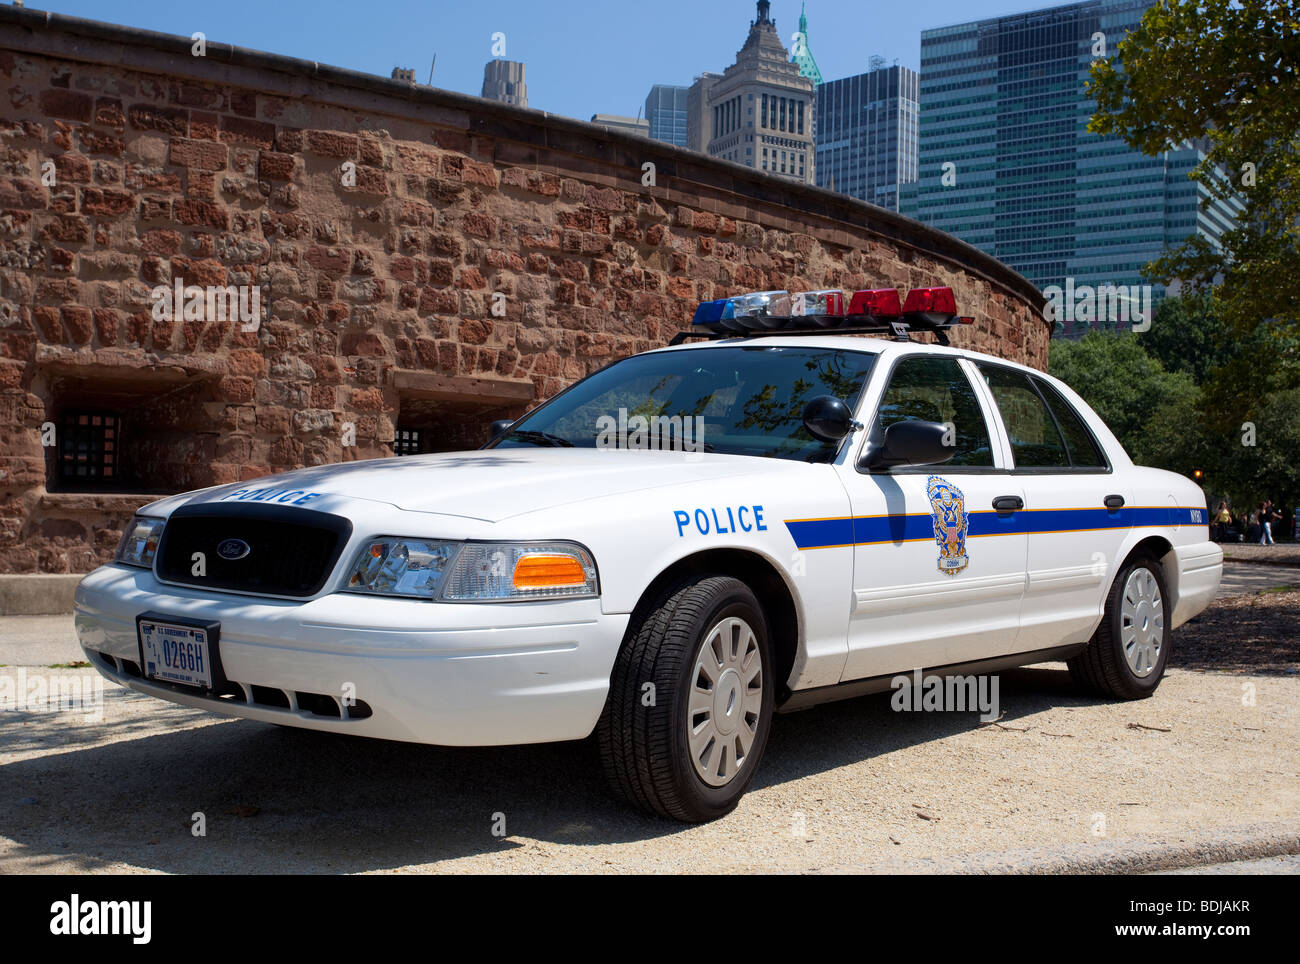 A police car parked in Manhattan, New York City, USA. Stock Photo